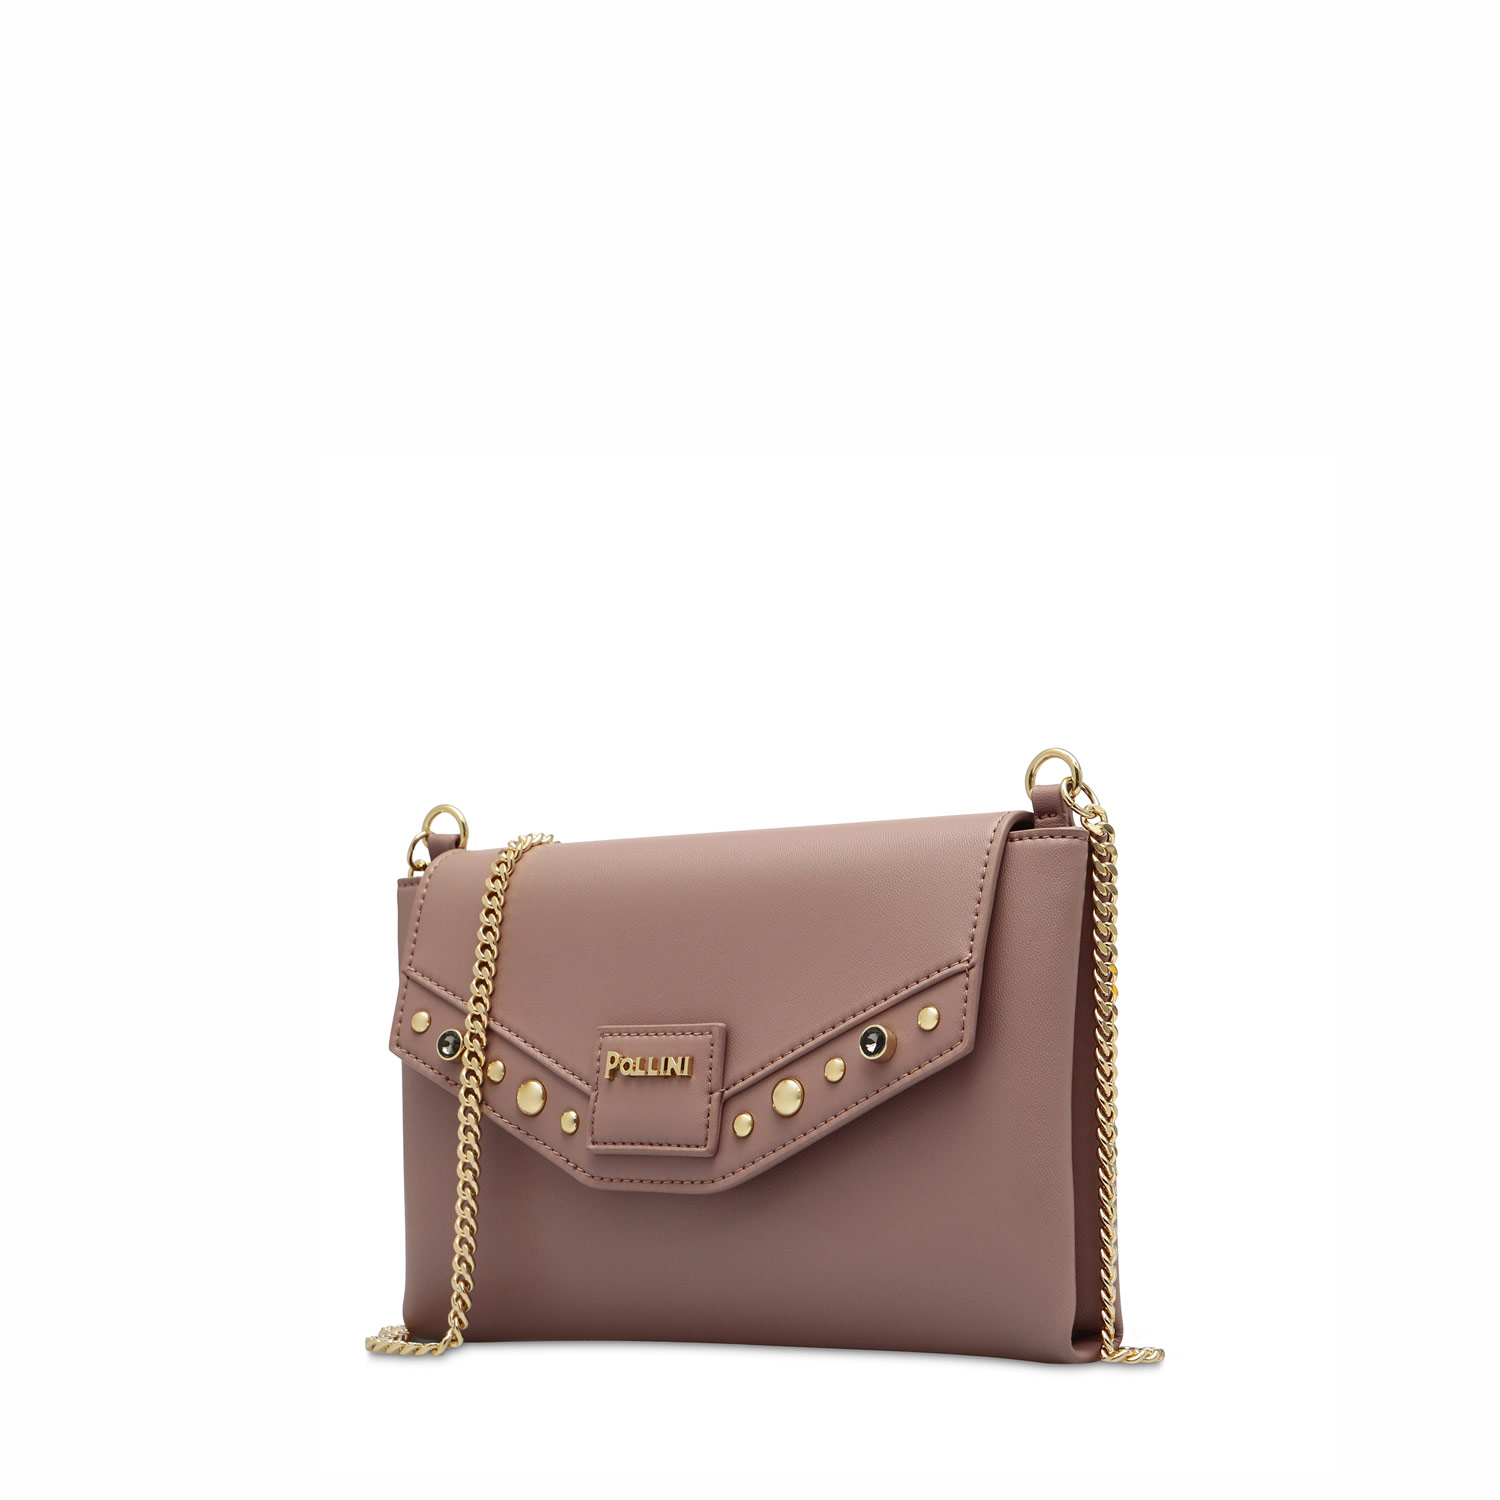 Handbag Old rose Woman FW19 Pollini Online Boutique